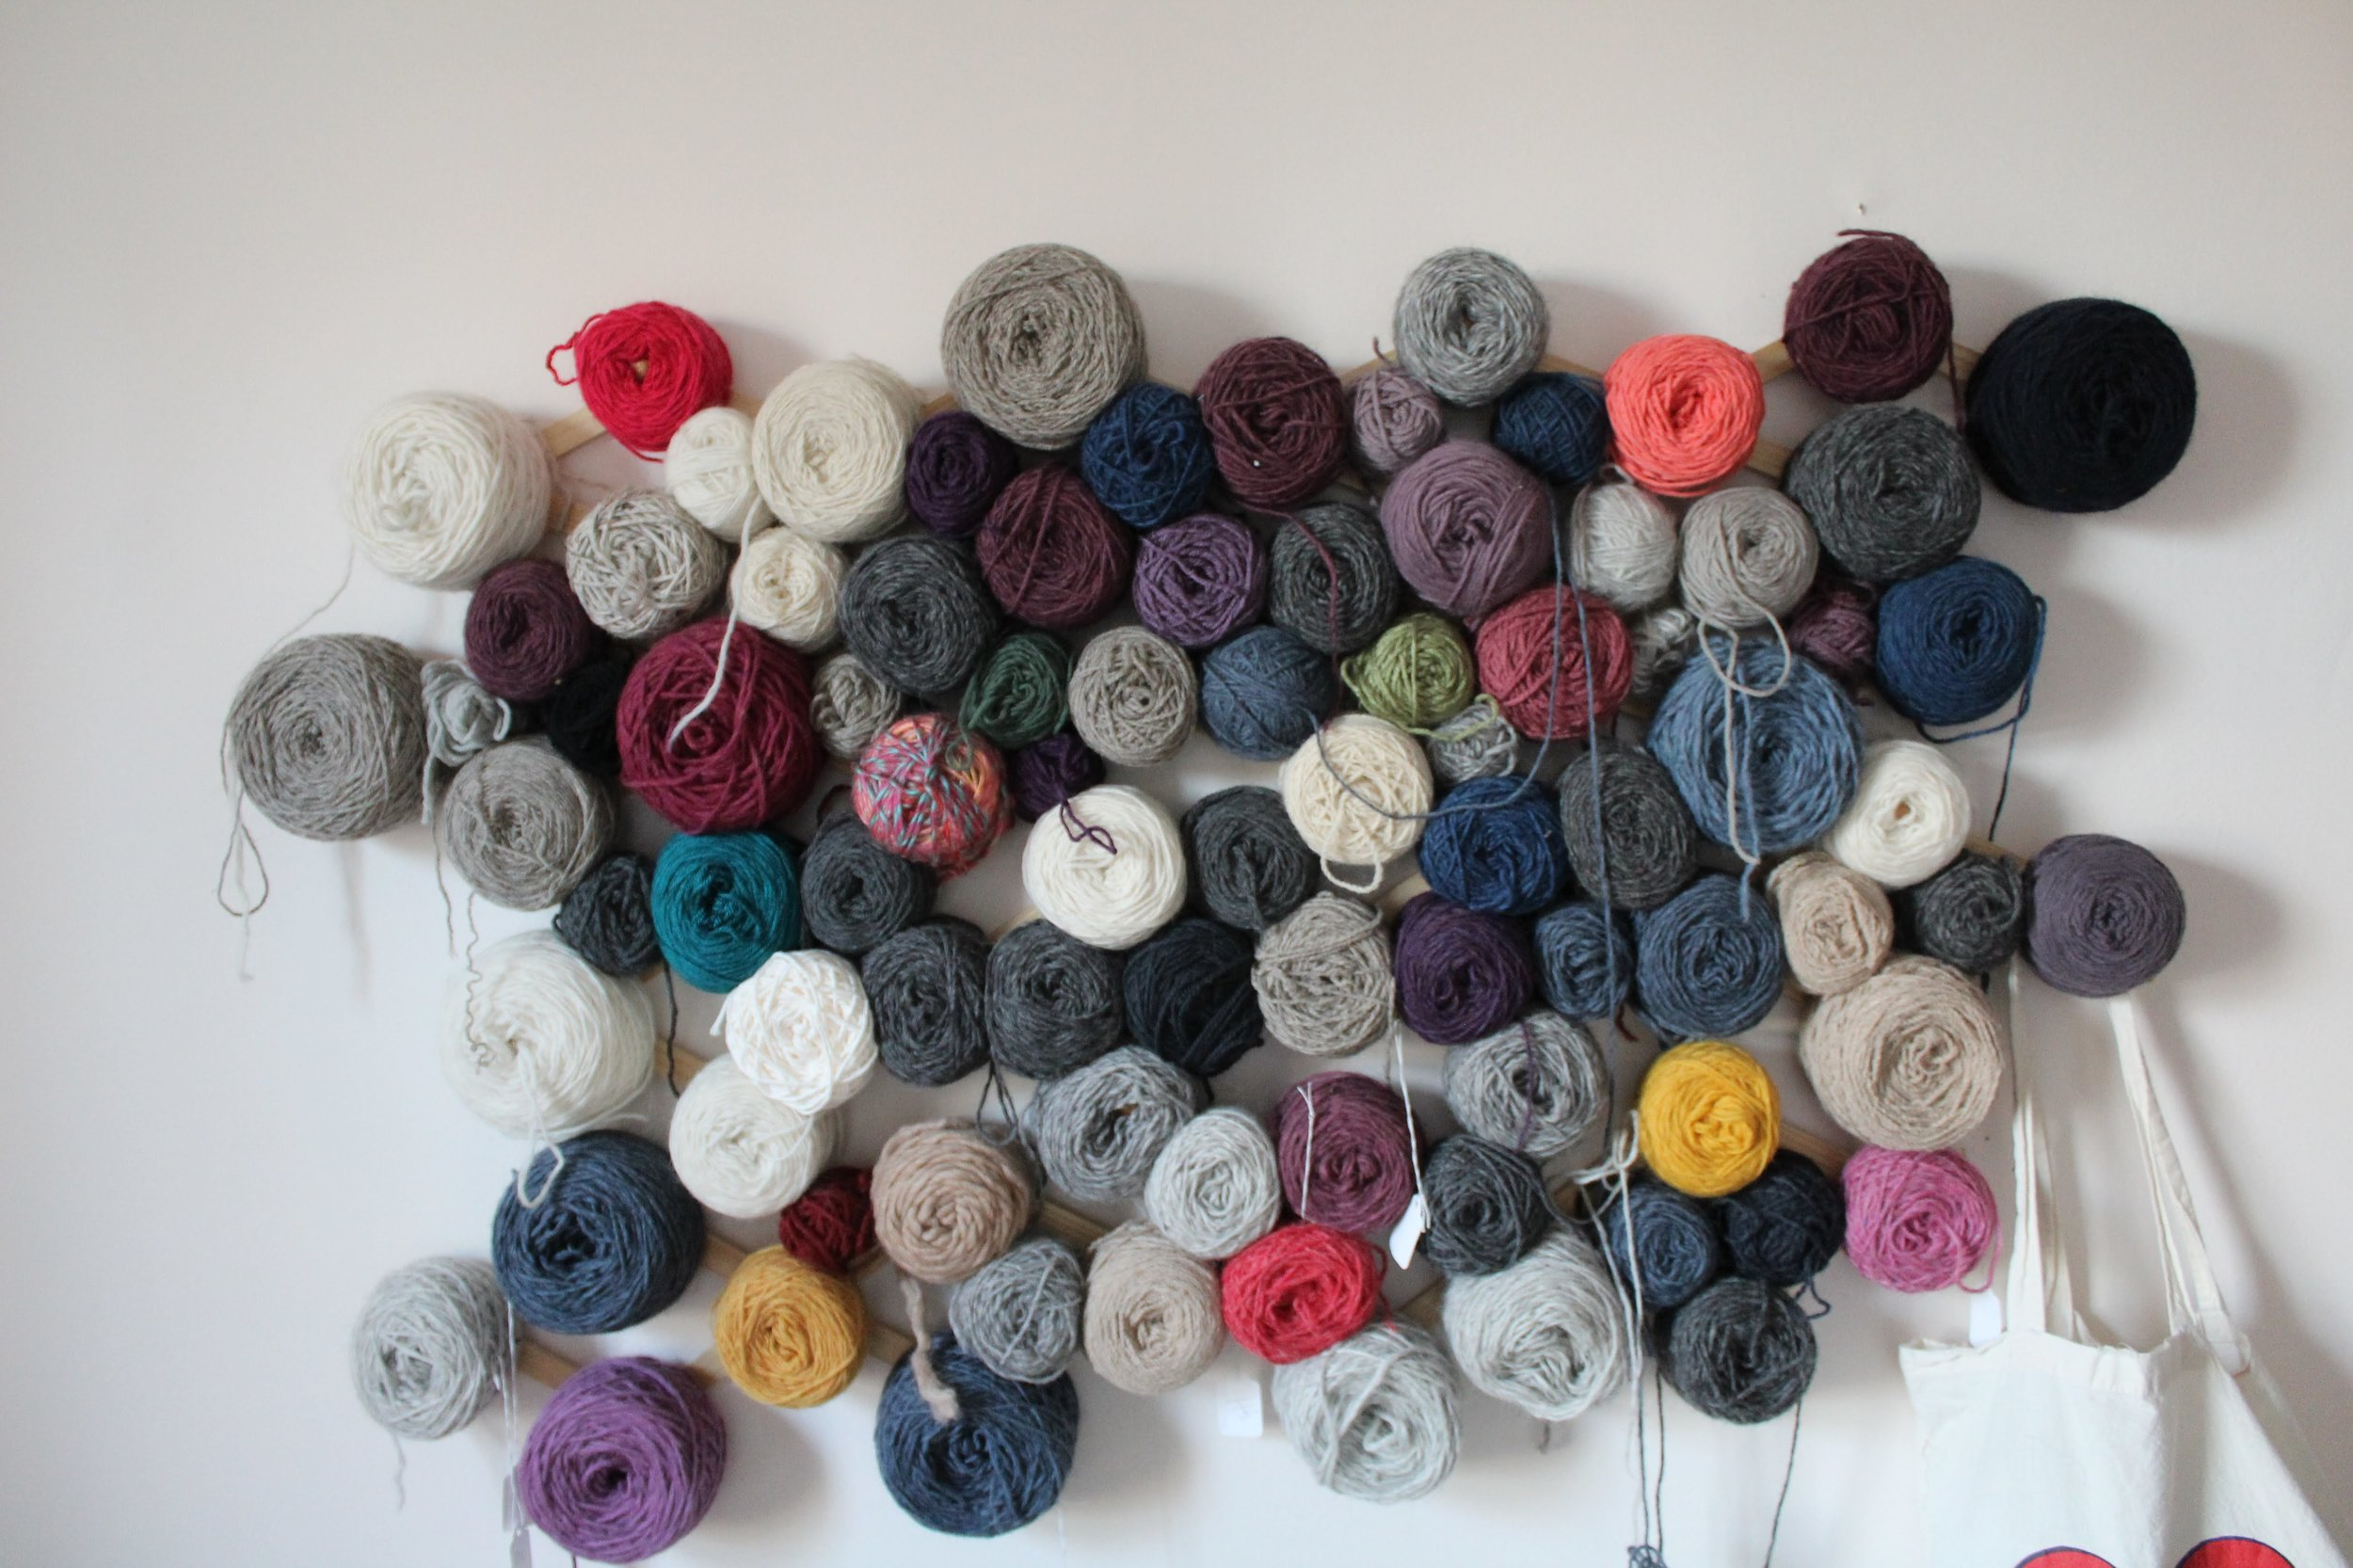 My wall of yarn, waiting to become tiny scarves and sweater (and large sweaters, too).